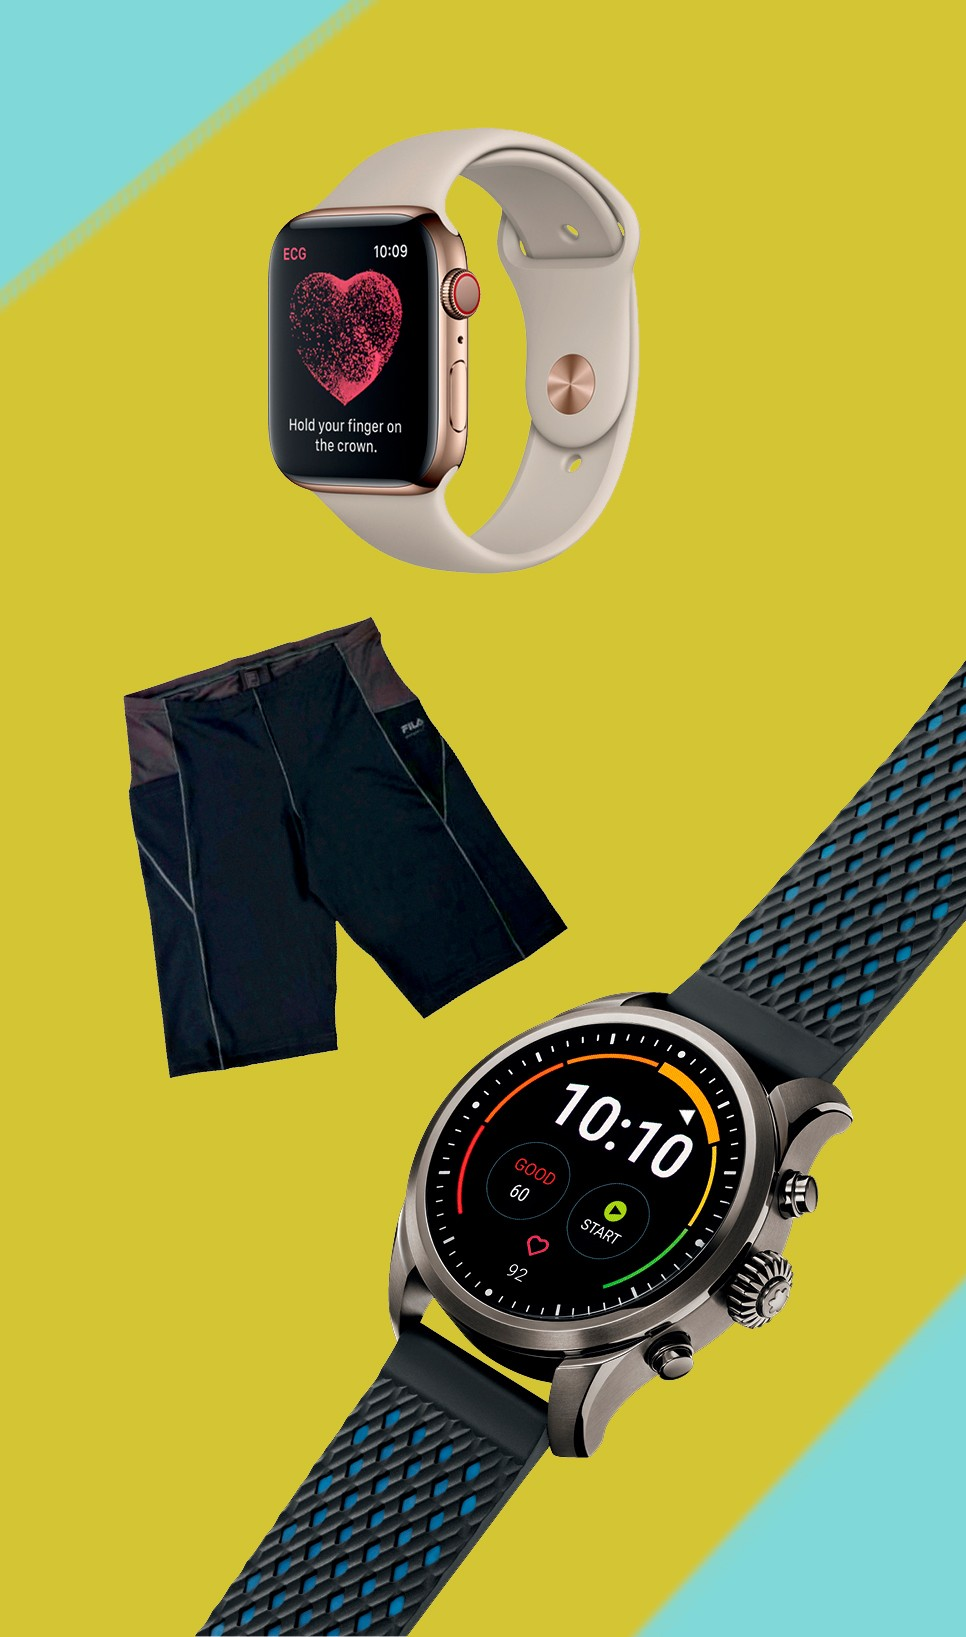 De cima p. baixo: Apple Watch Series 4 Nike+, R$ 4.000; Shorts Fila High Tech Emana II, R$ 130; Montblanc Summit 2, R$ 4.365 a R$ 4.815 (Foto: Divulgação/Arte: Leandro Bicudo)